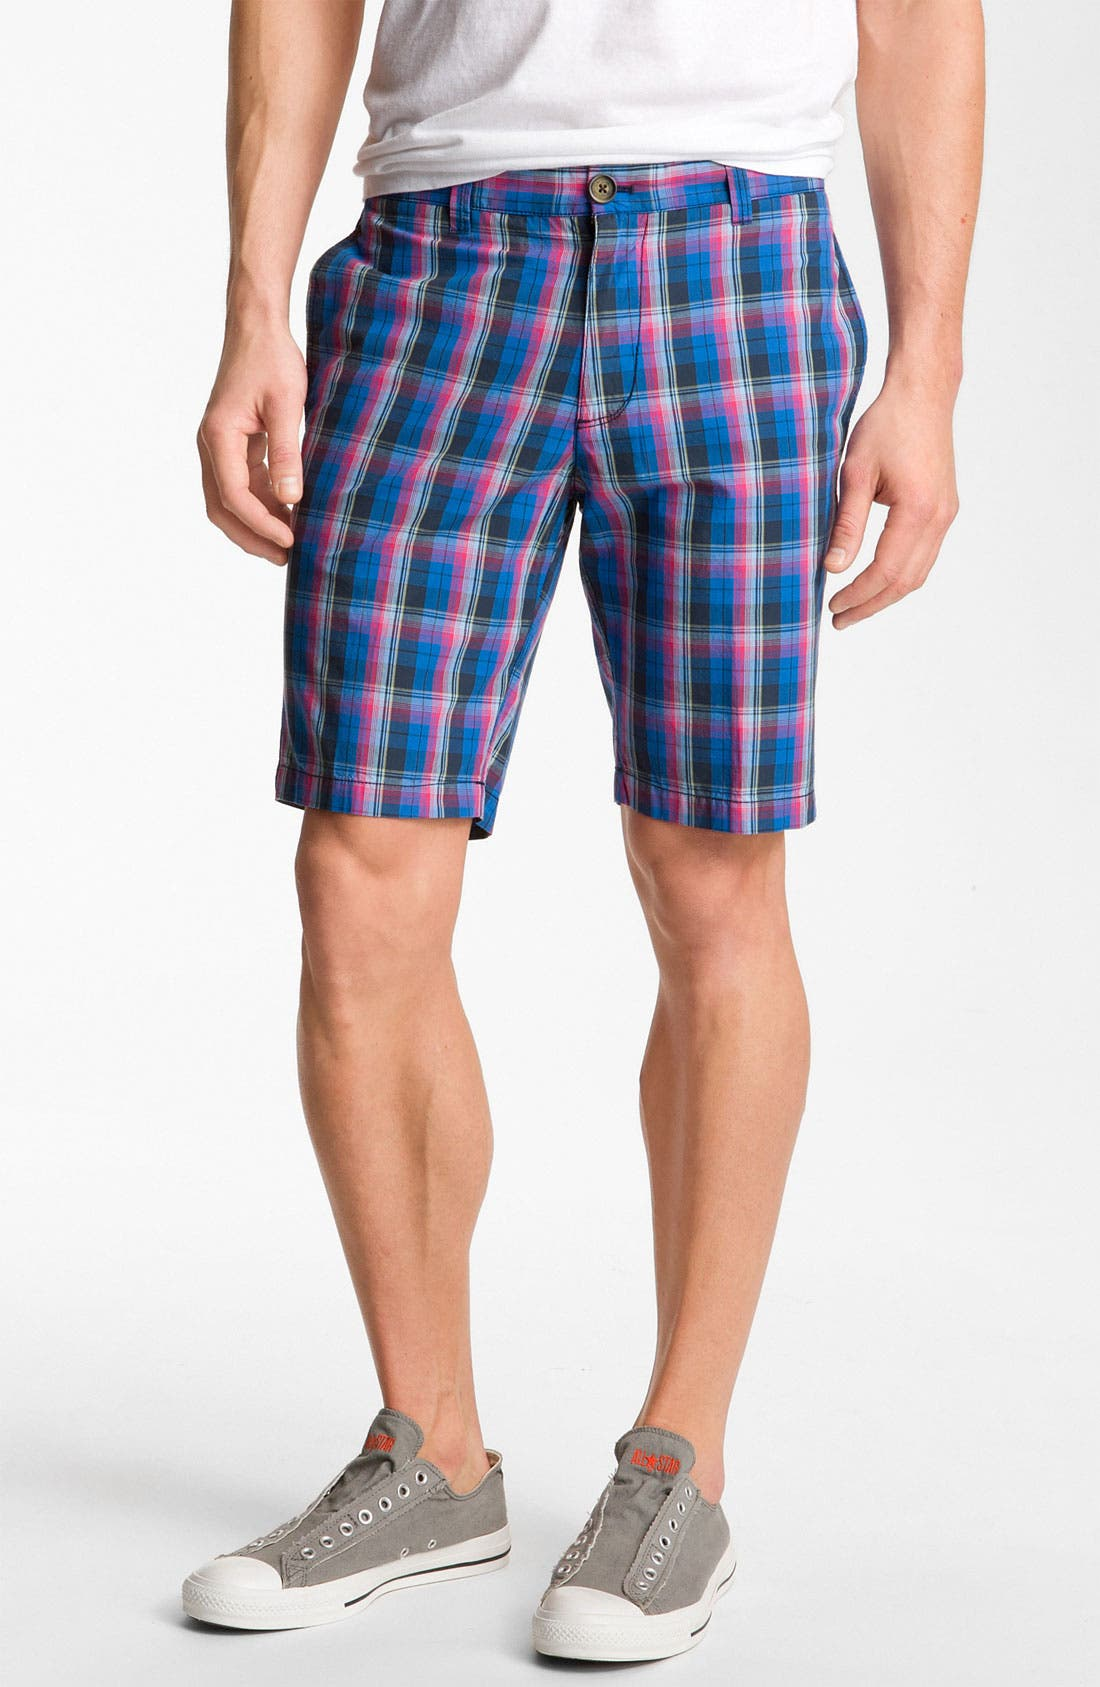 Alternate Image 1 Selected - Original Penguin 'Berson' Plaid Shorts